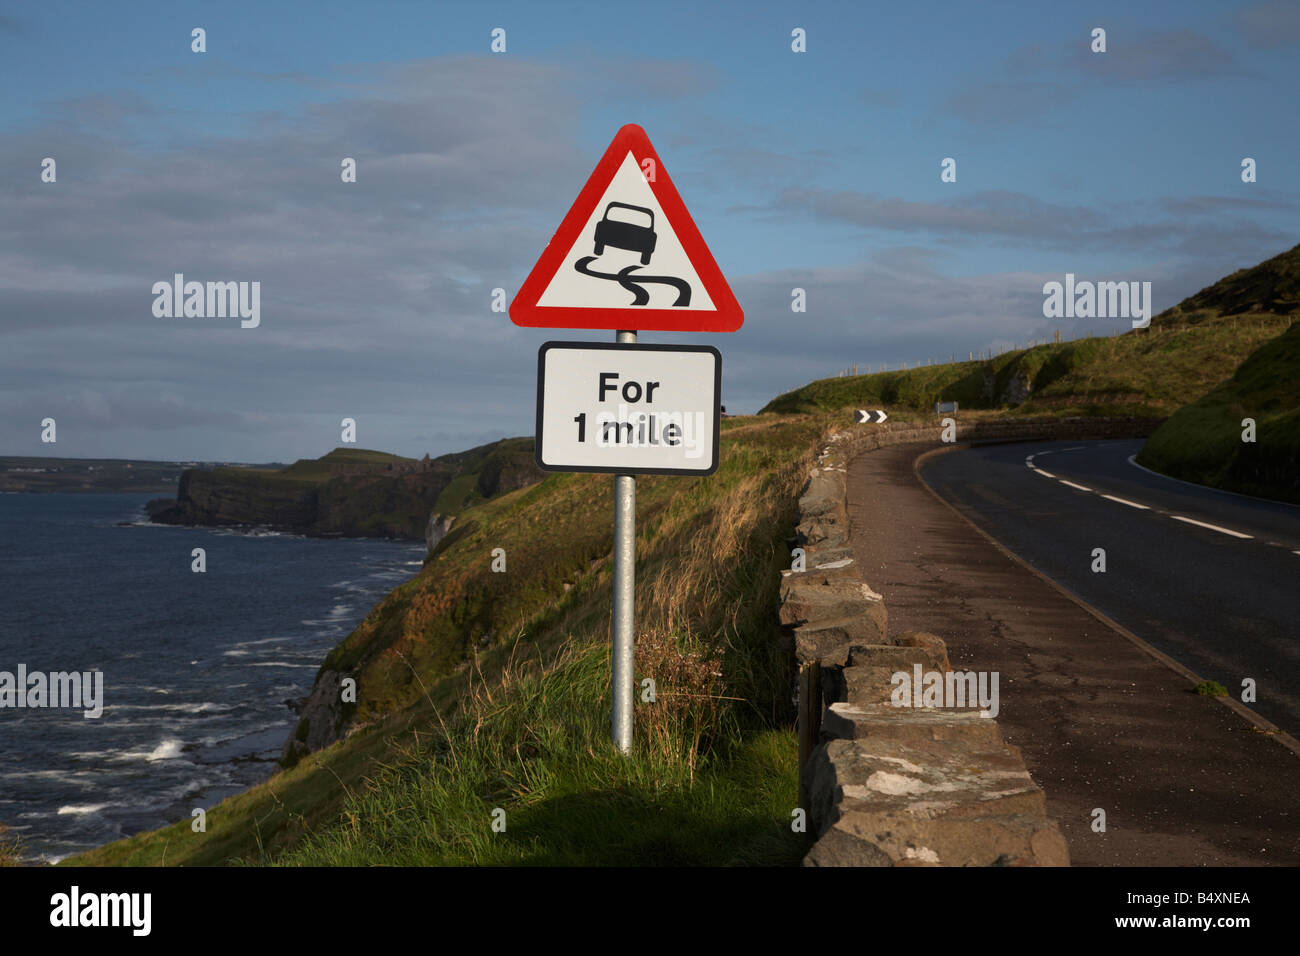 slippery road danger red warning triangle for 1 mile sign on the famous A2 north antrim causeway coastal road route - Stock Image